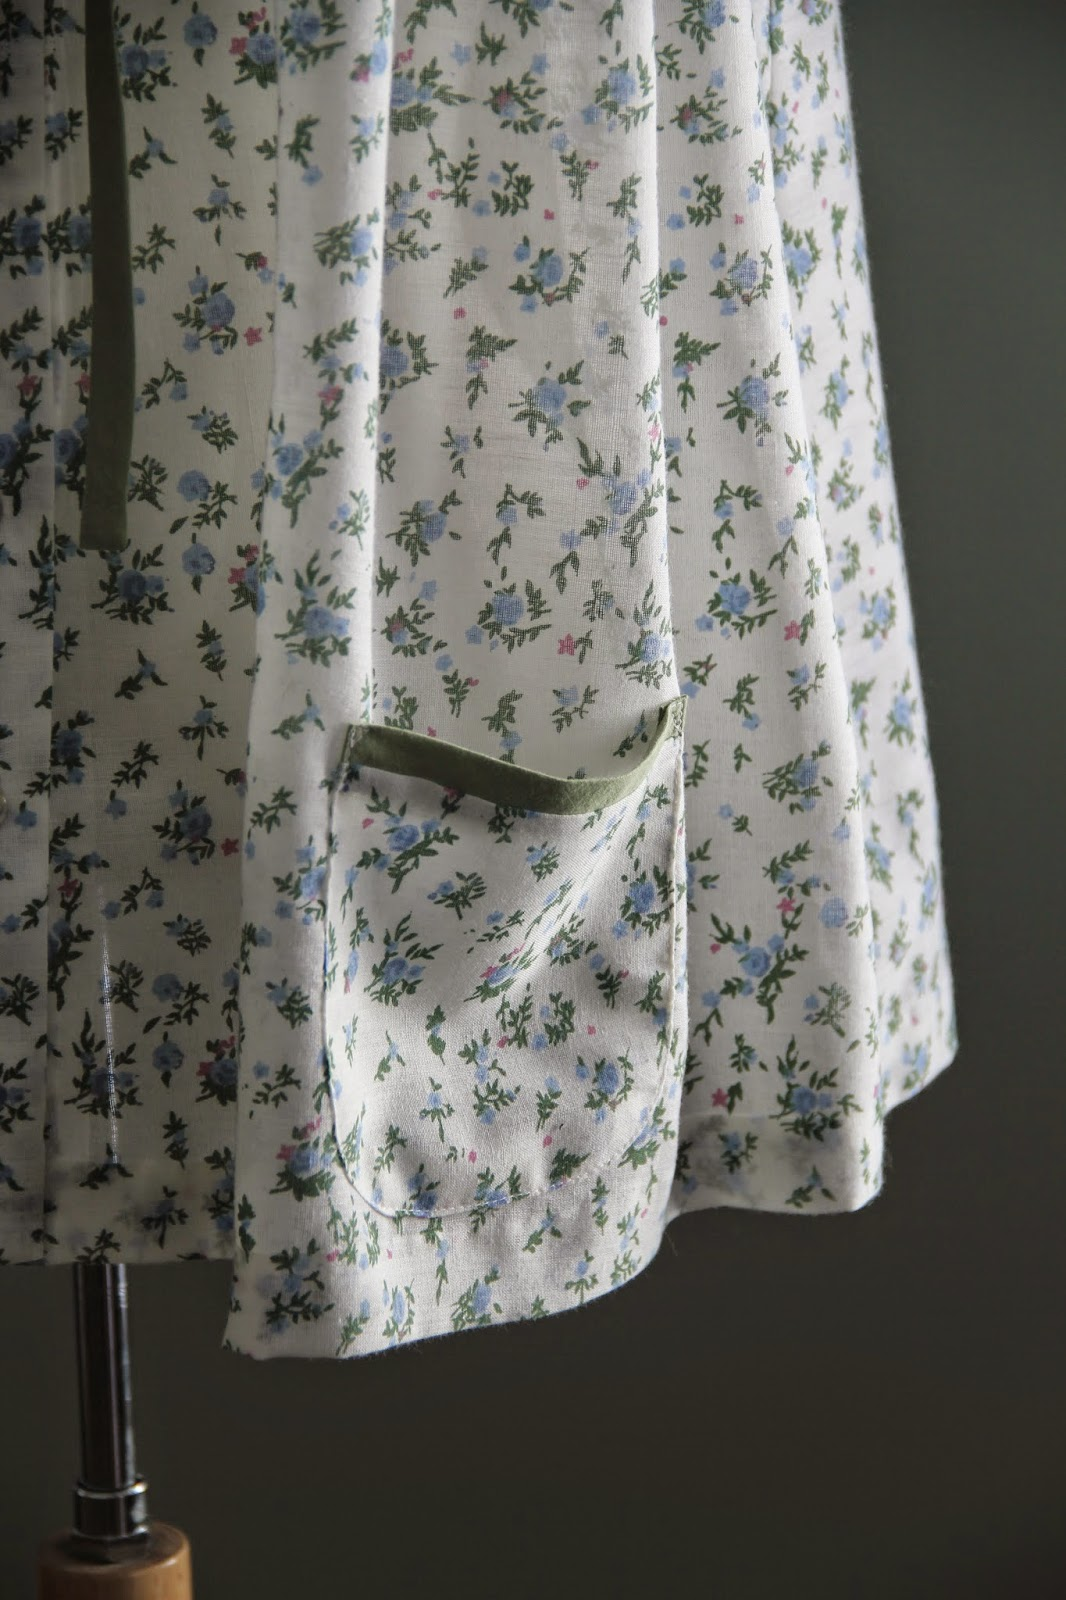 patch pockets in floral lawn 1958 maternity top